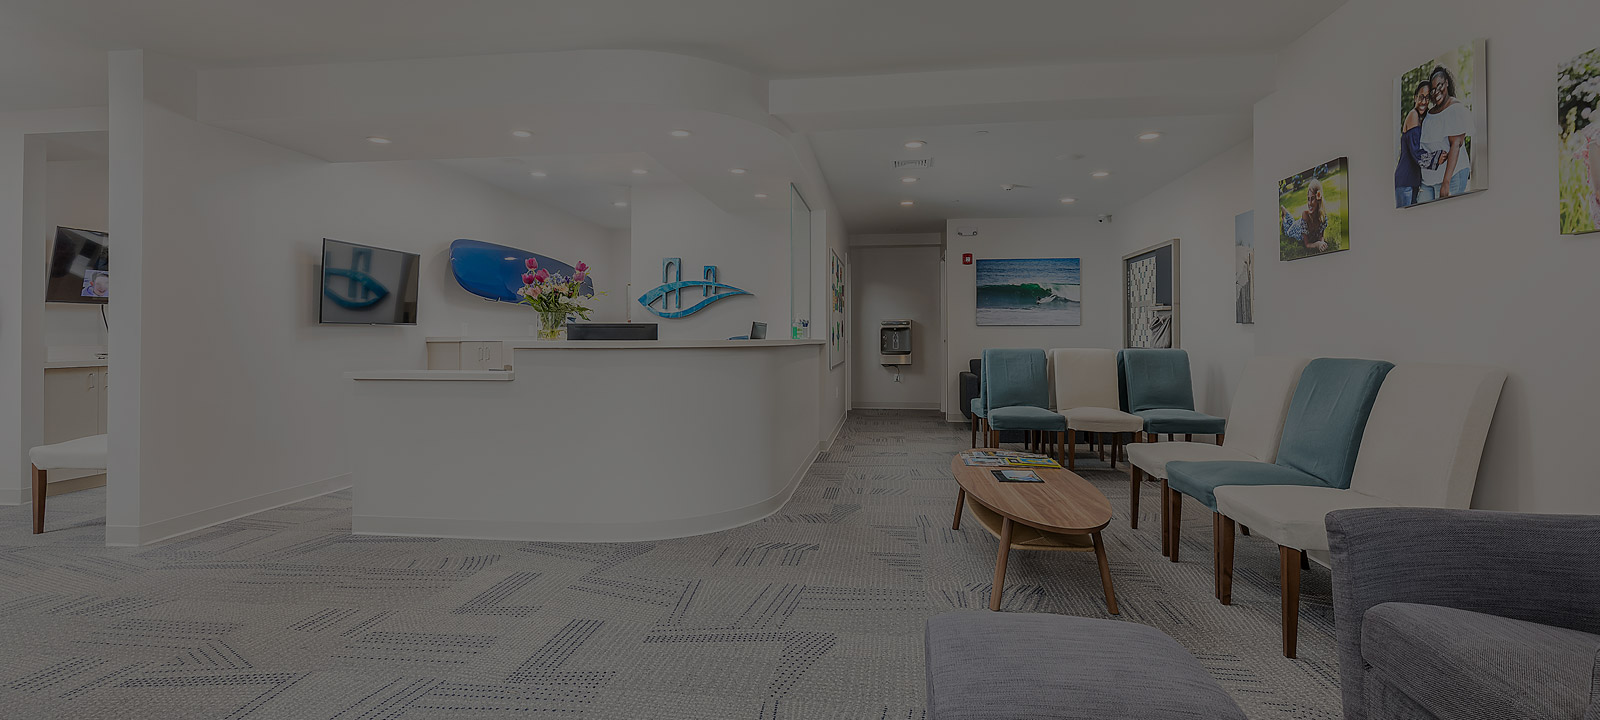 Forster Orthodontics reception area